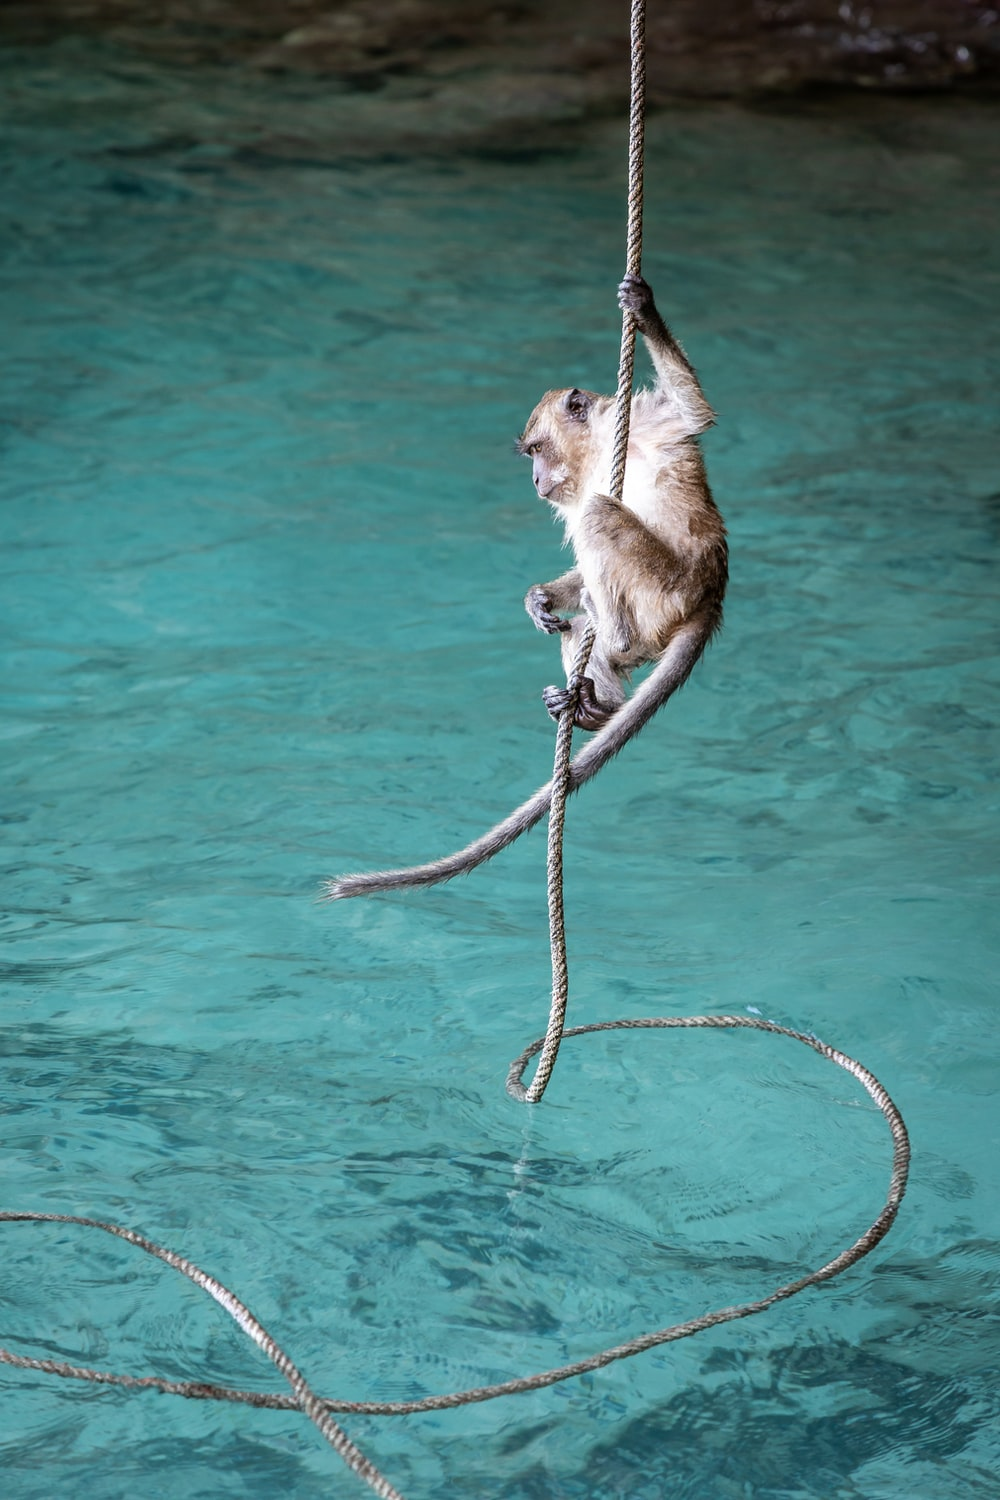 monkey hanging on rope